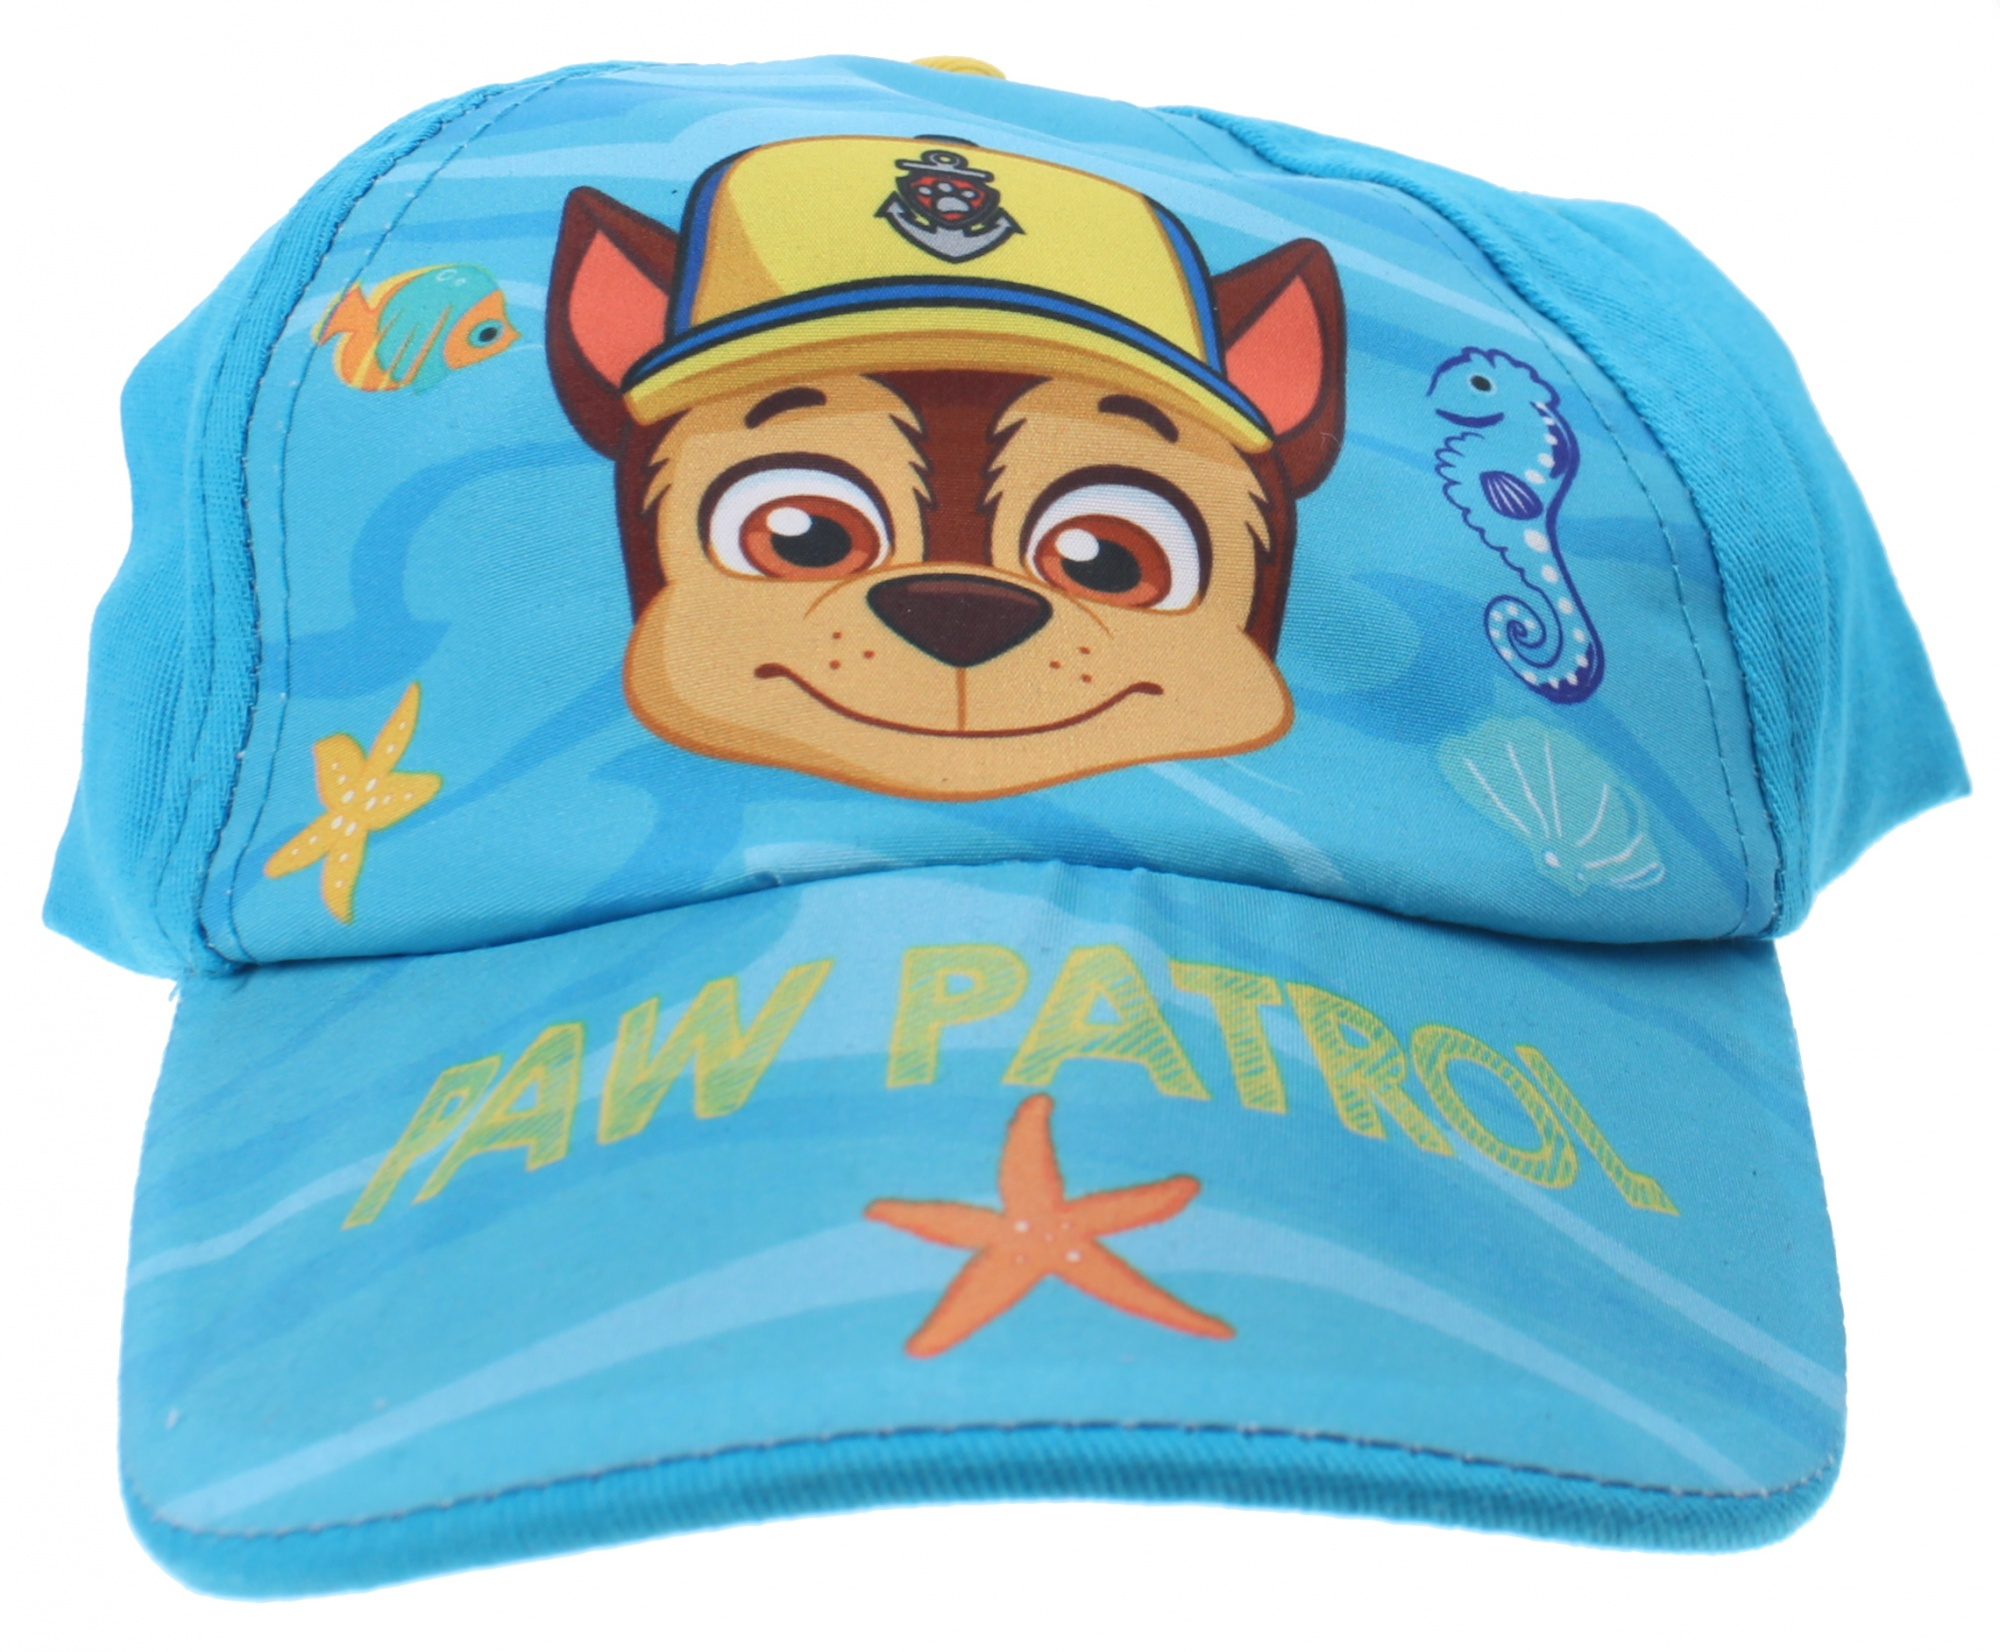 cheap for discount e1d76 5c26c Nickelodeon cap Paw Patrol boys blue size 44-46. Enlarge